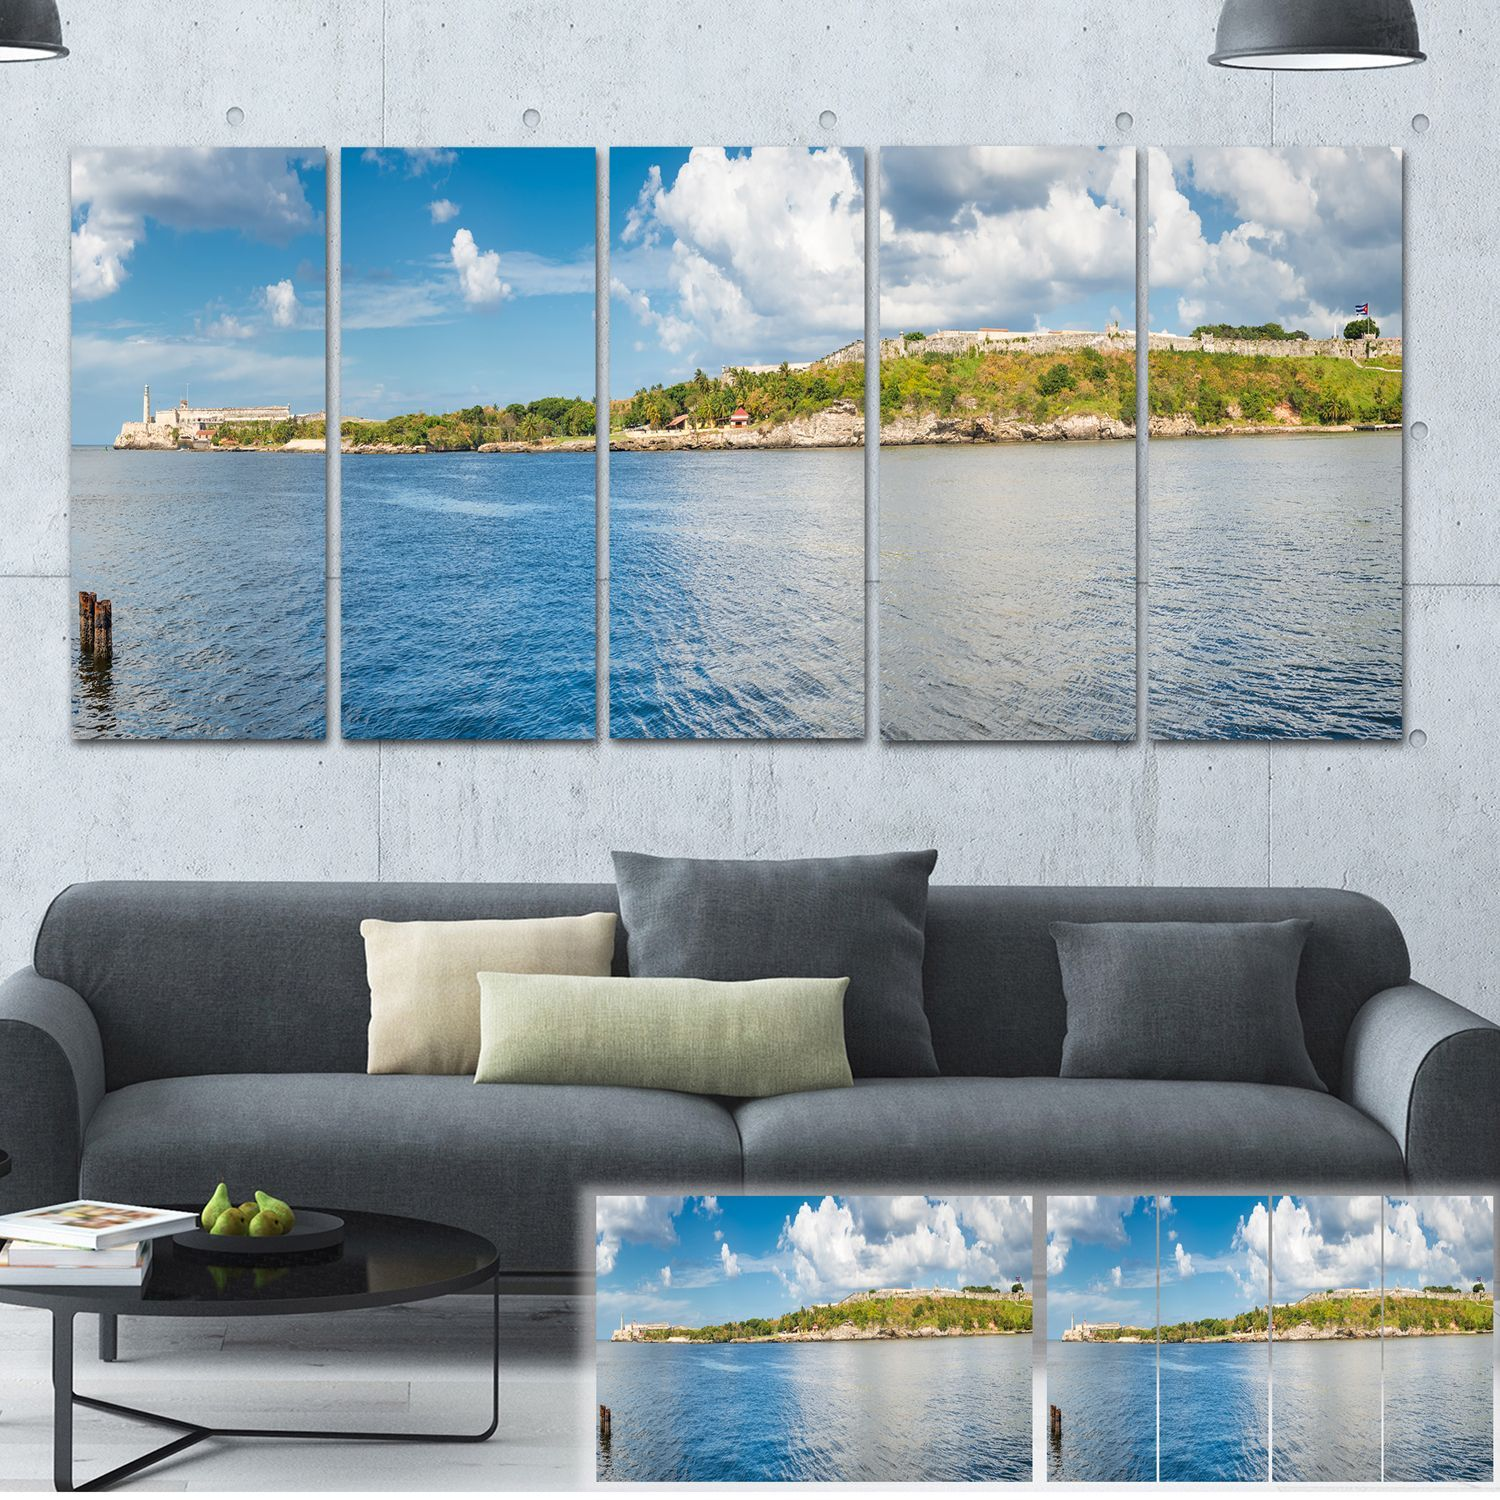 Herman miller canvas office landscapes youtube - Designart The Bay Of Havana Panorama Seascape Photo Canvas Print By Design Art